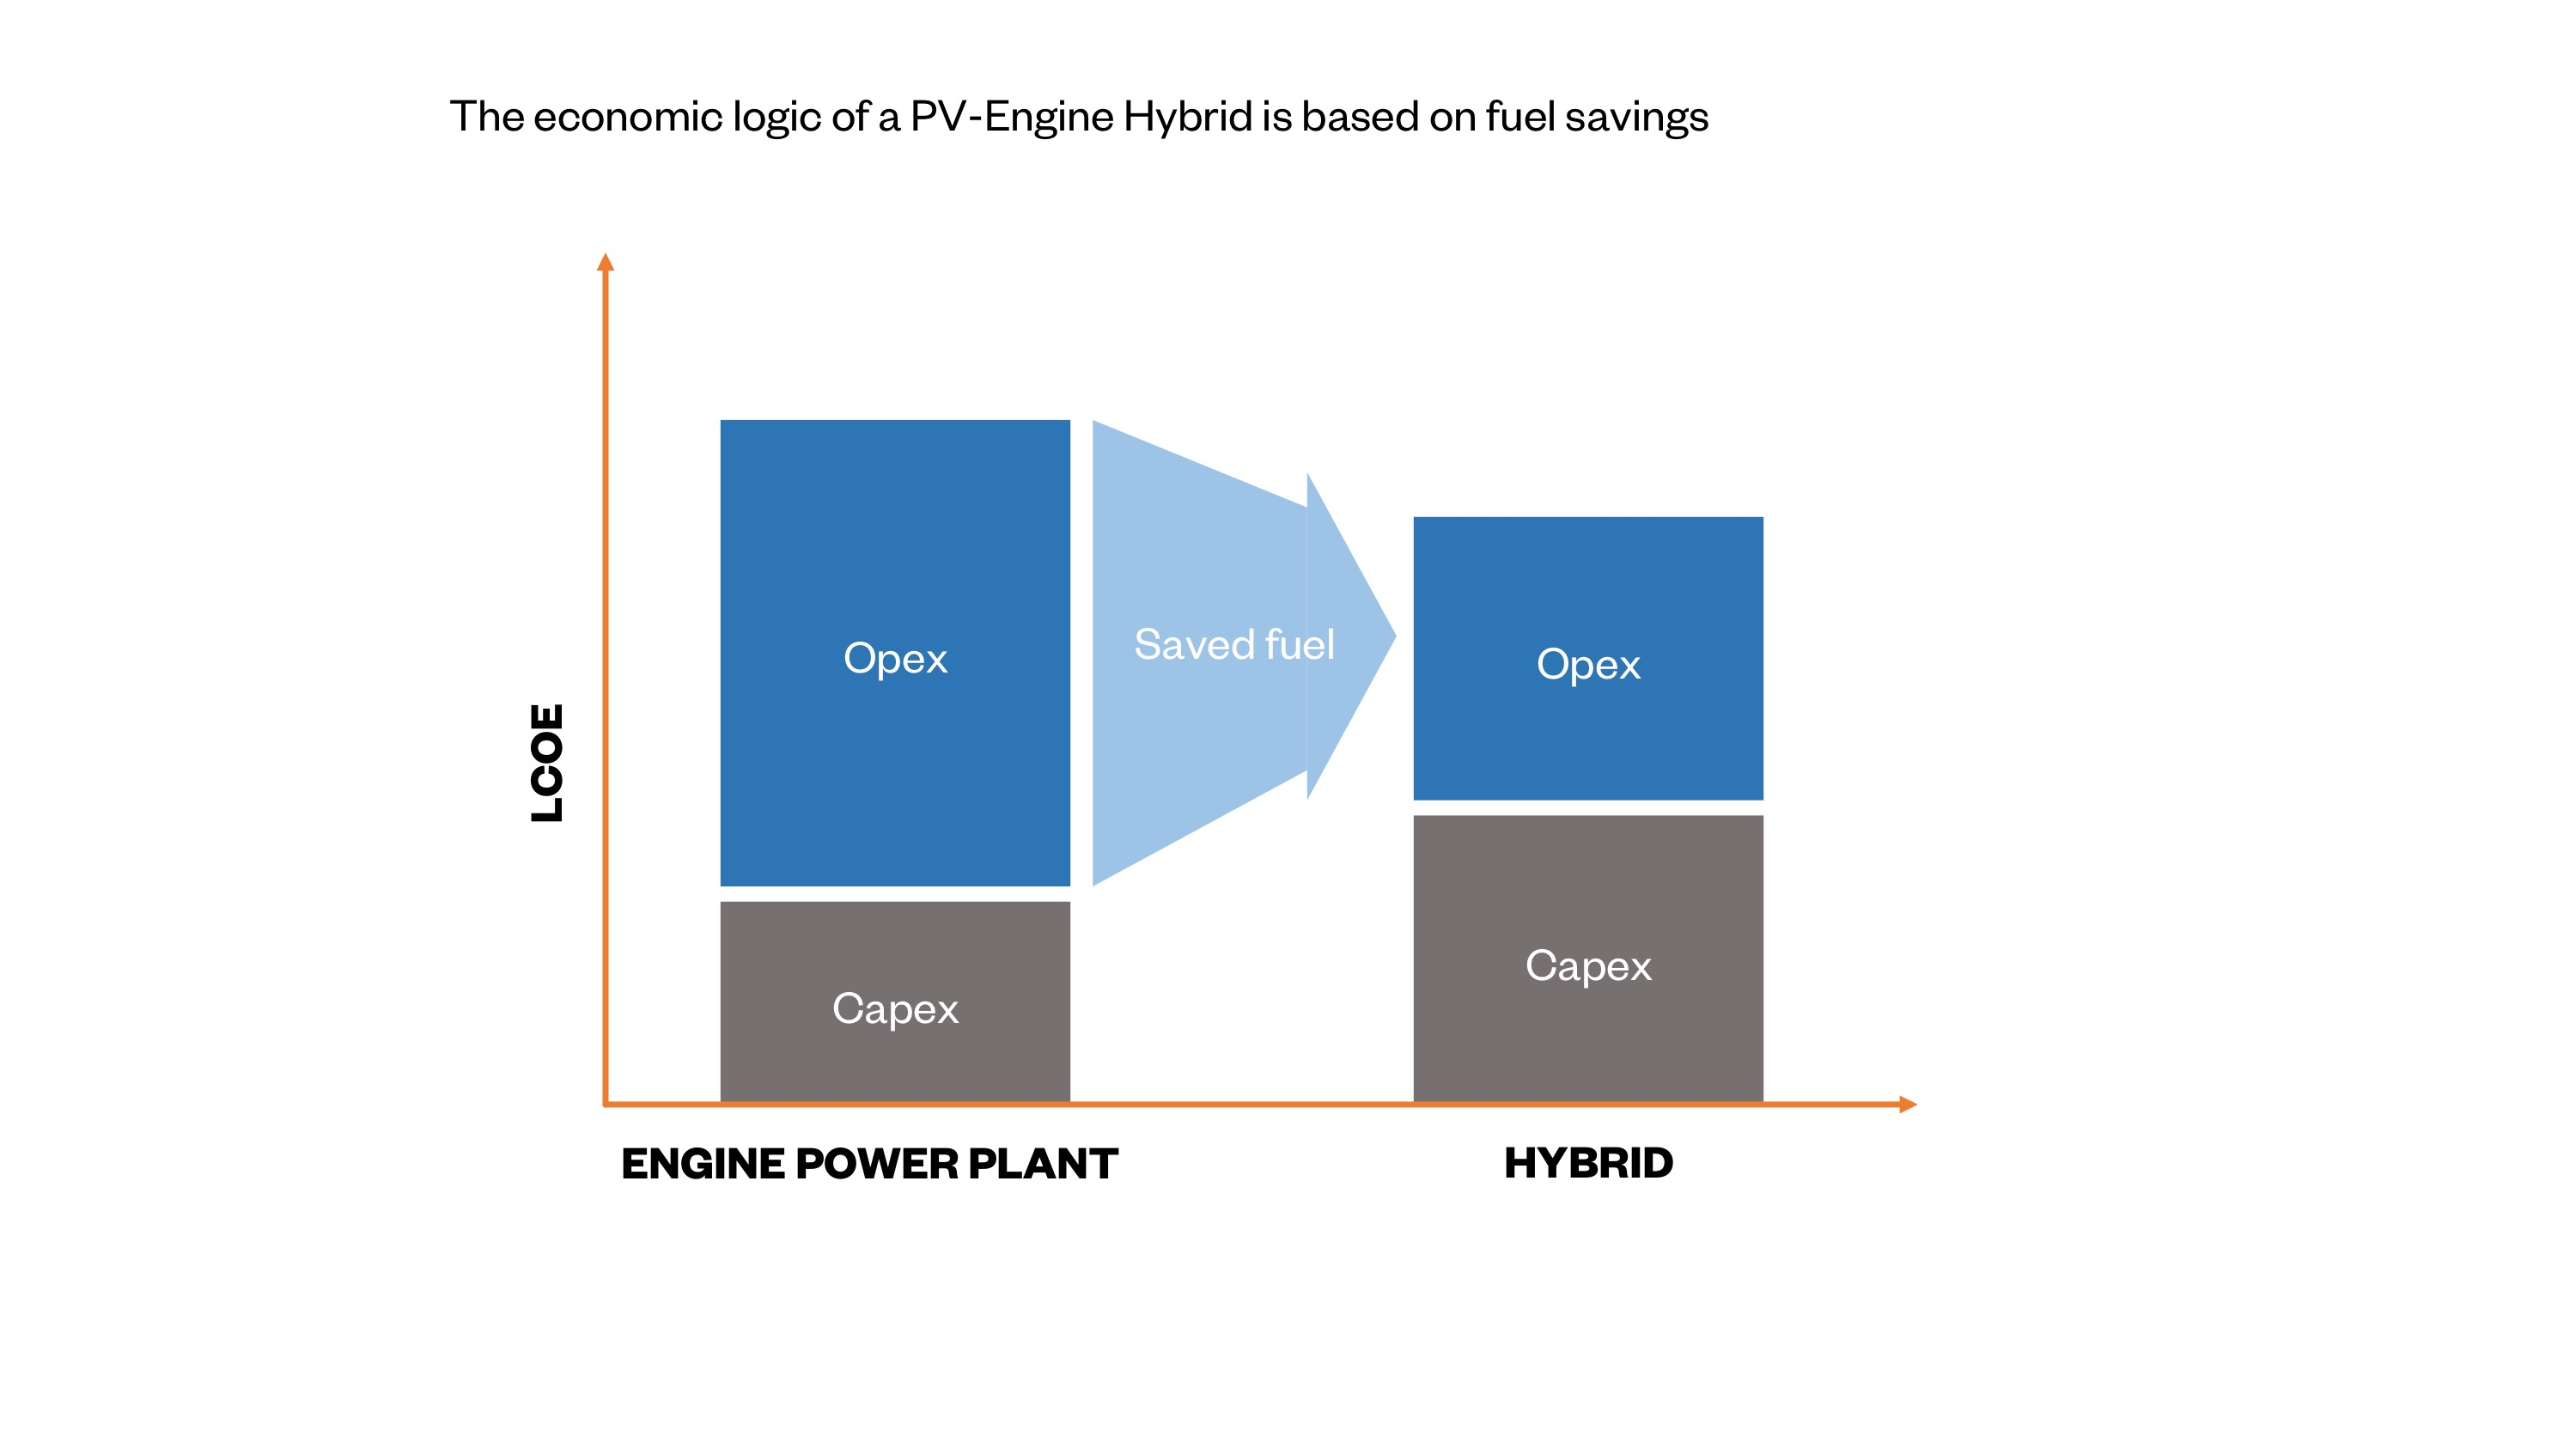 Bright Future For Pv Solar Power Diesel Plant Layout And Working Fig 2 The Economic Logic Of A Engine Hybrid Is Based On